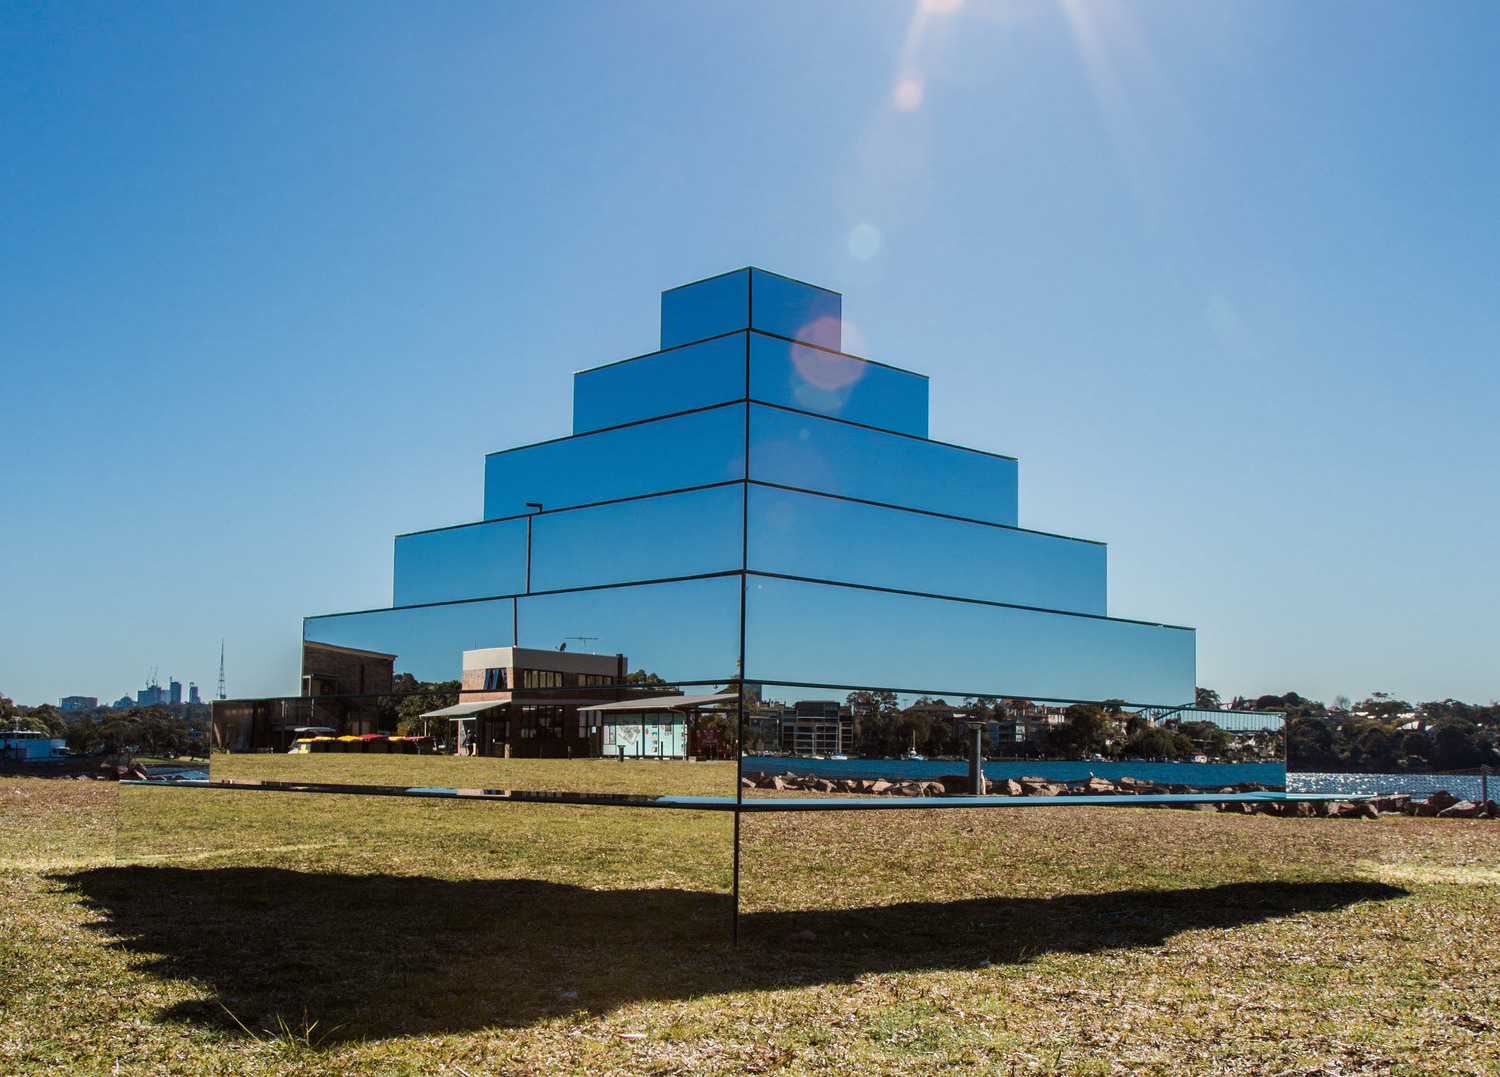 Mirrored-Ziggurat-by-Shirin-Abedinirad-2